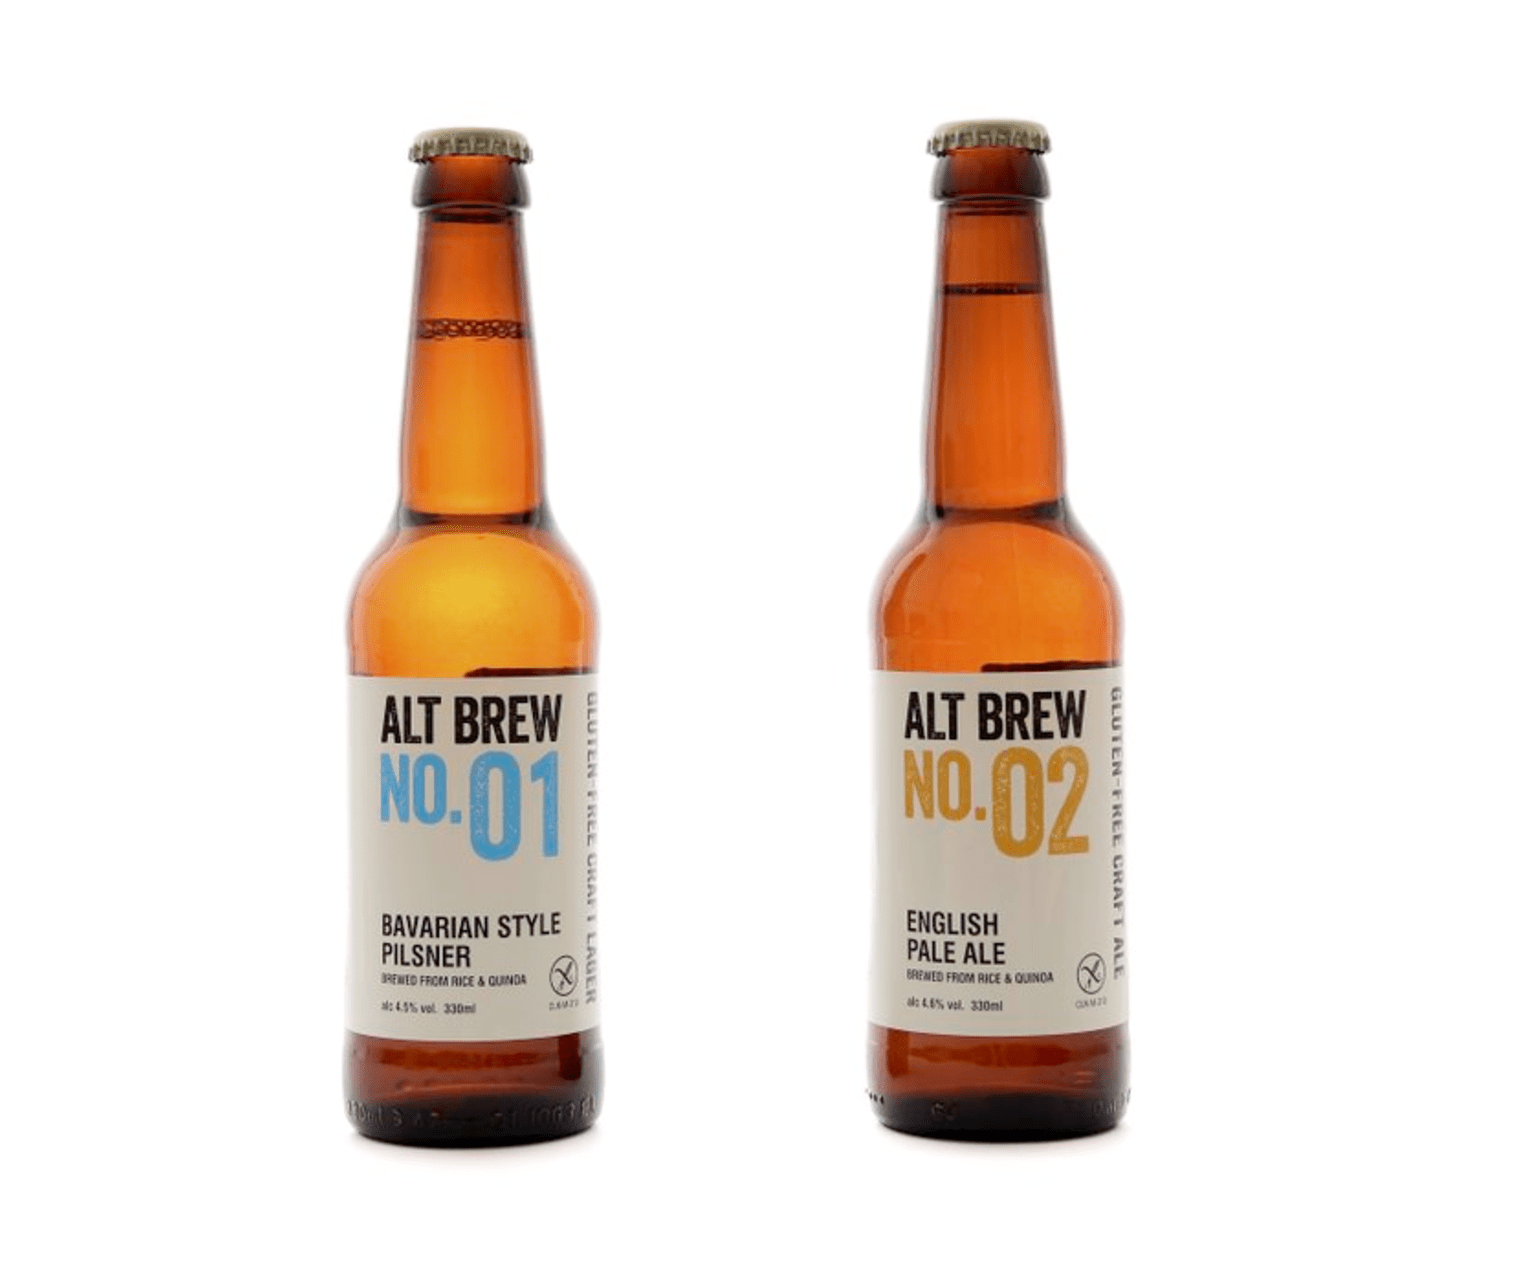 alt brew autumn brewing co gluten free beer